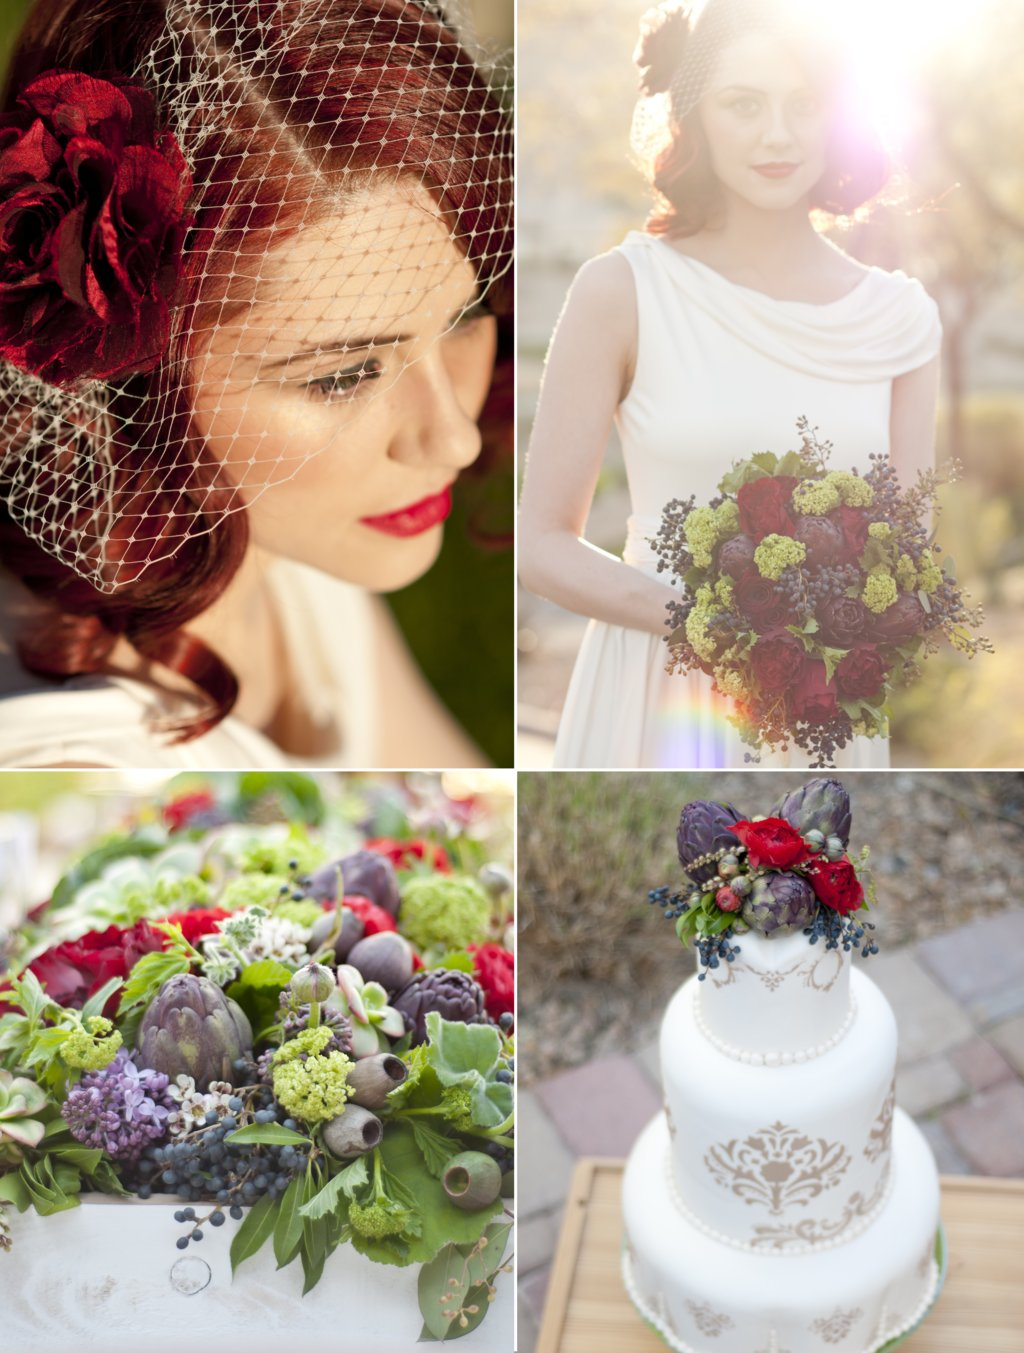 Romantic-wedding-inspiration-for-fall-outdoor-weddings-parisian-inspired.full